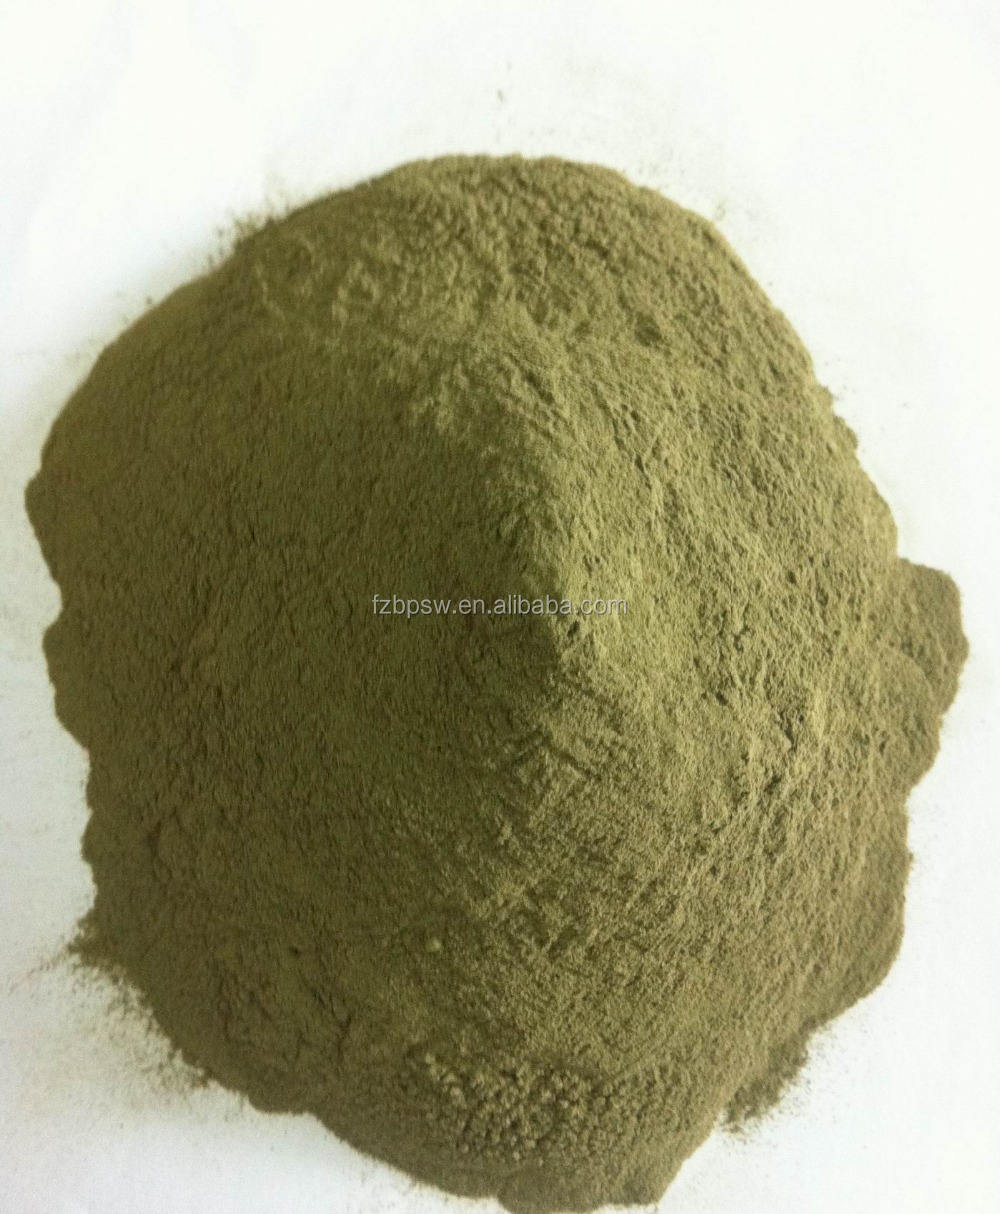 Offer Ulva Lactuca Powder Seaweed for Animal feed